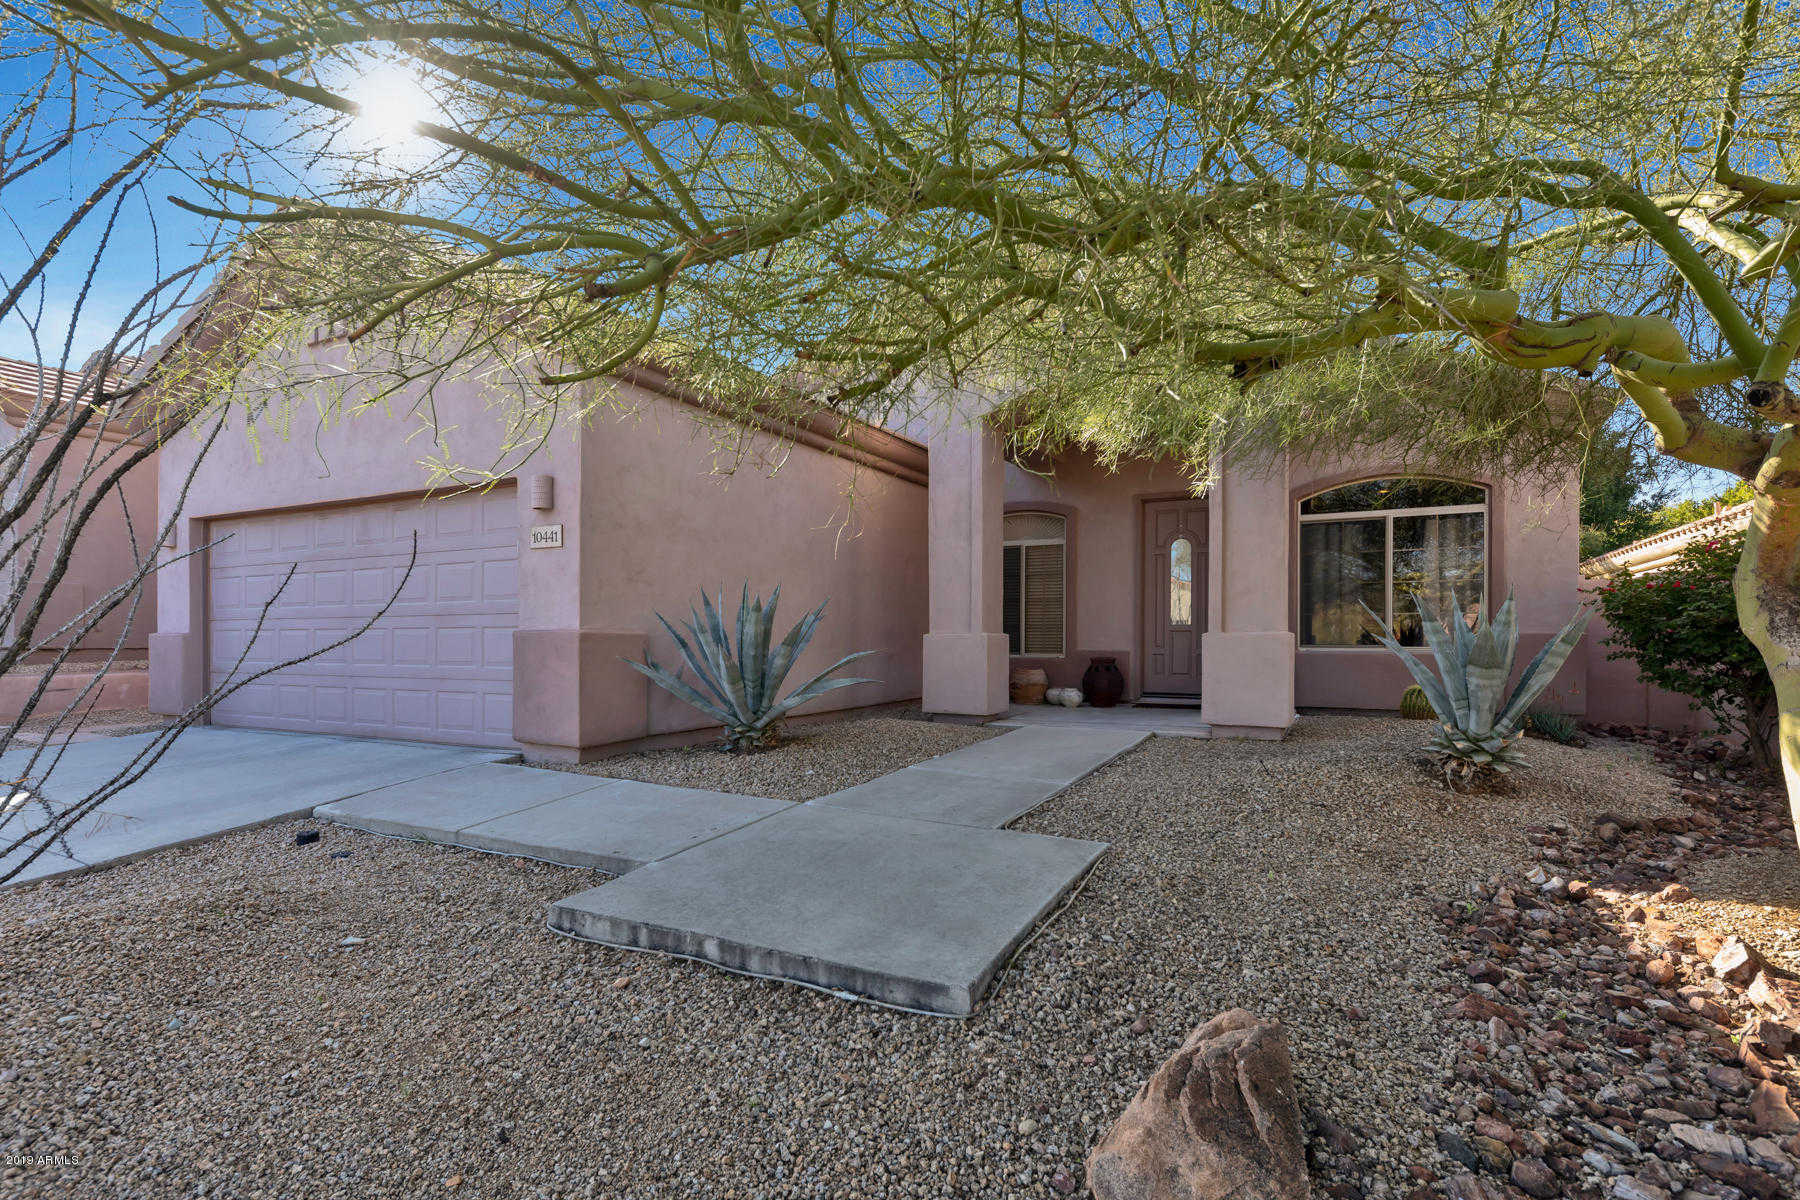 $459,000 - 3Br/2Ba - Home for Sale in Mcdowell Mountain Ranch Parcel V Replat, Scottsdale